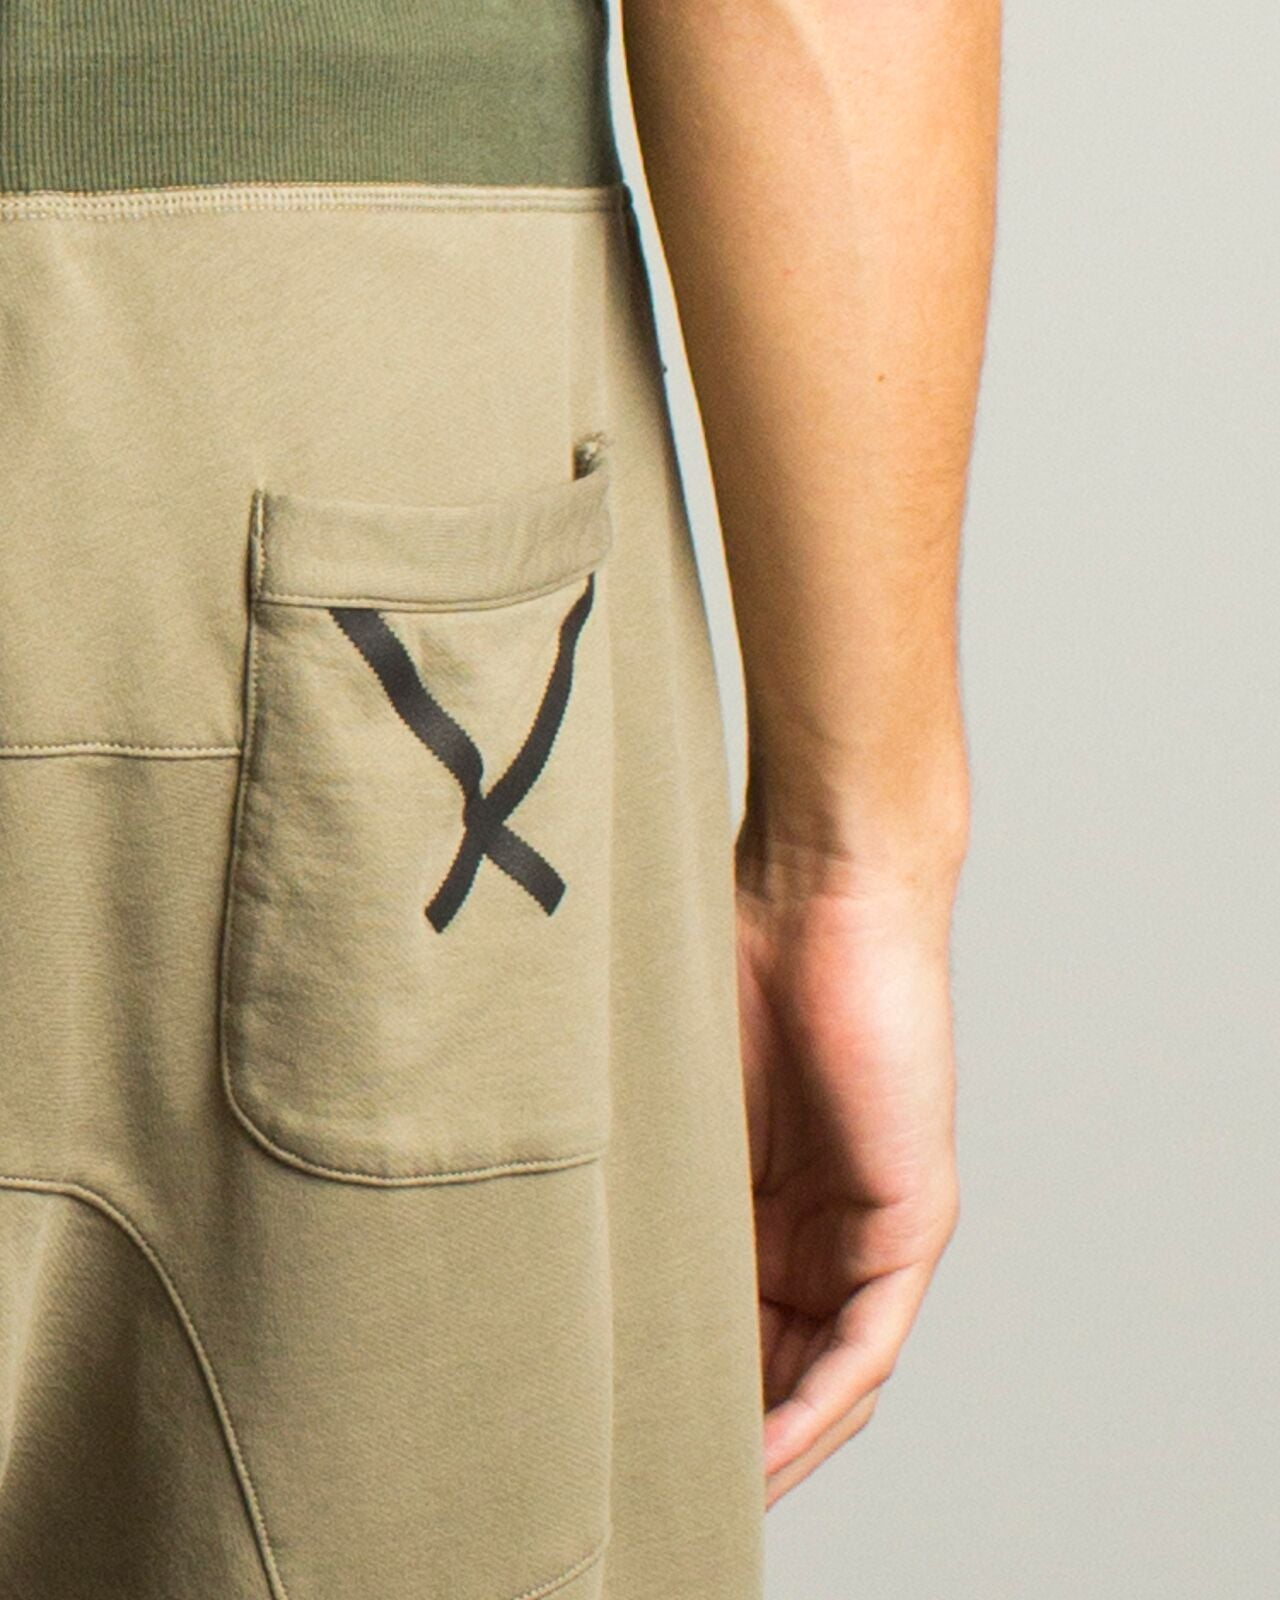 Oyster XBYO Sweatpants Trace Olive